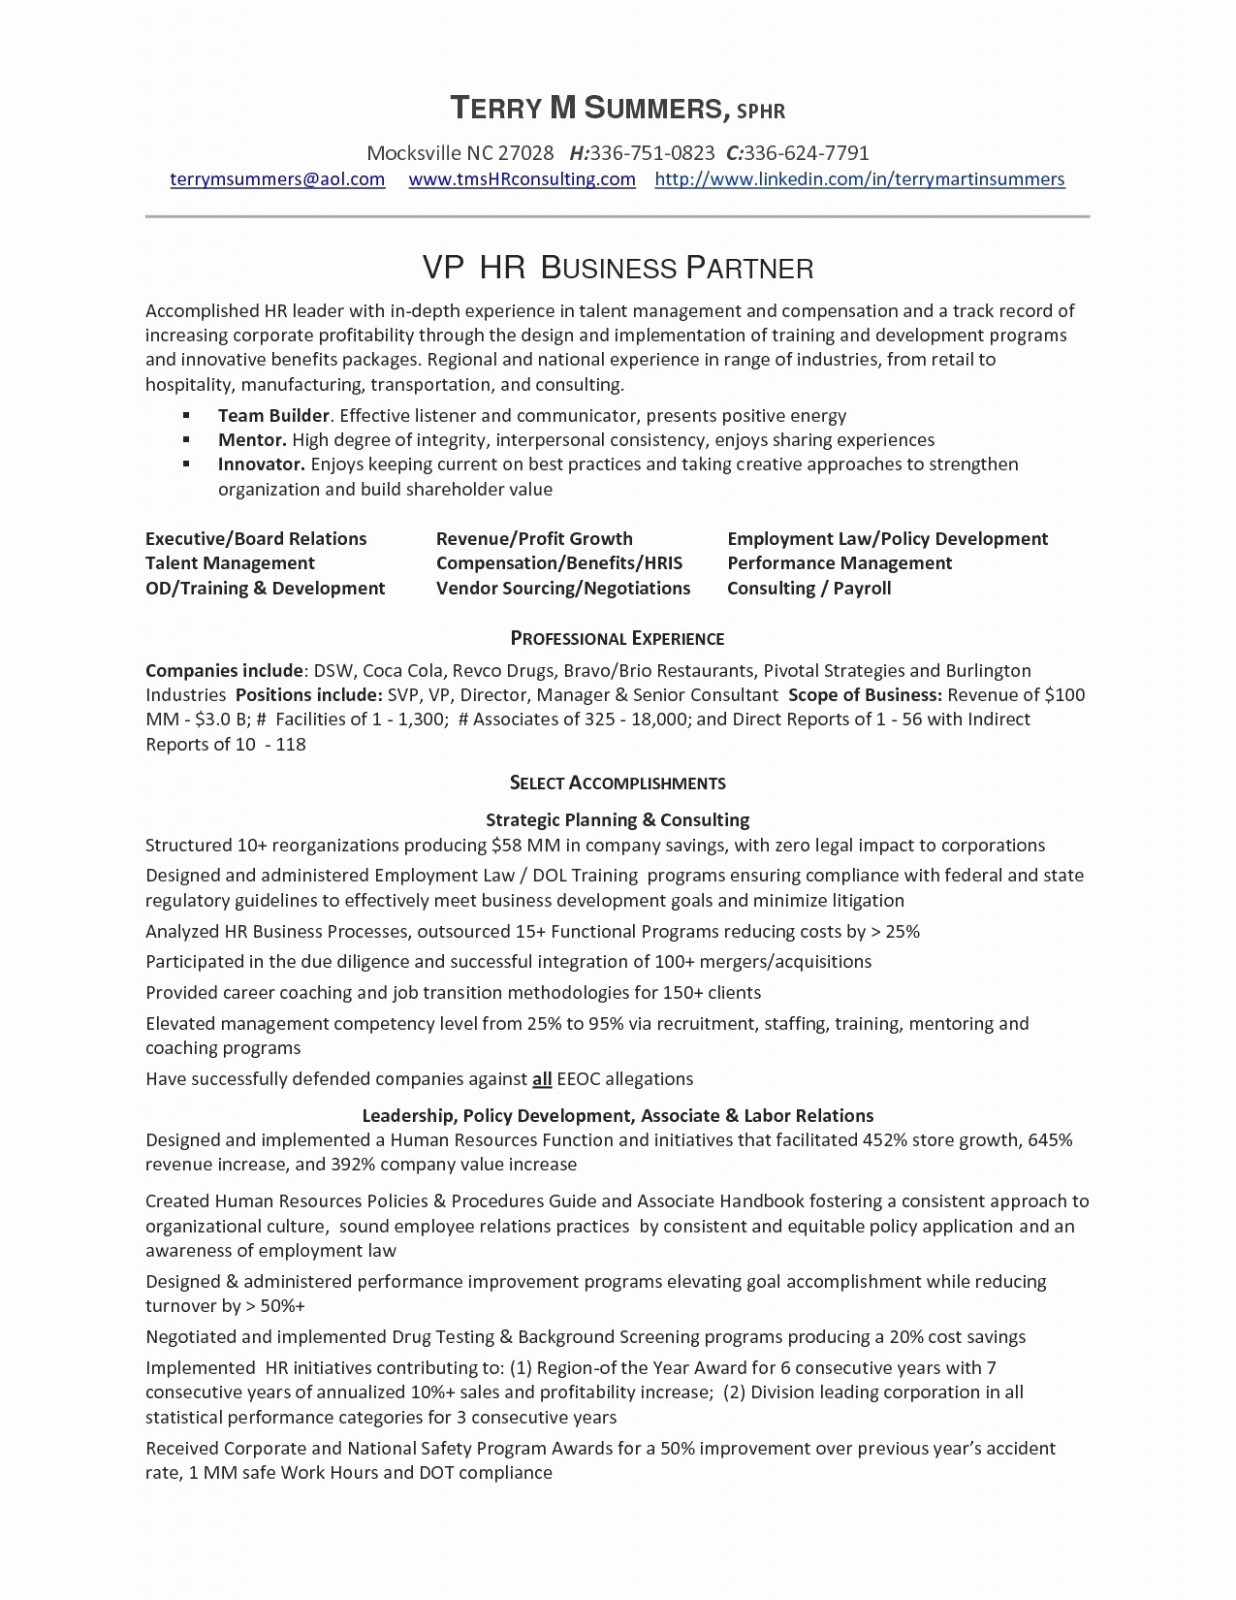 Project Manager Resume Examples - Property Management Resume Examples Reference Property Manager